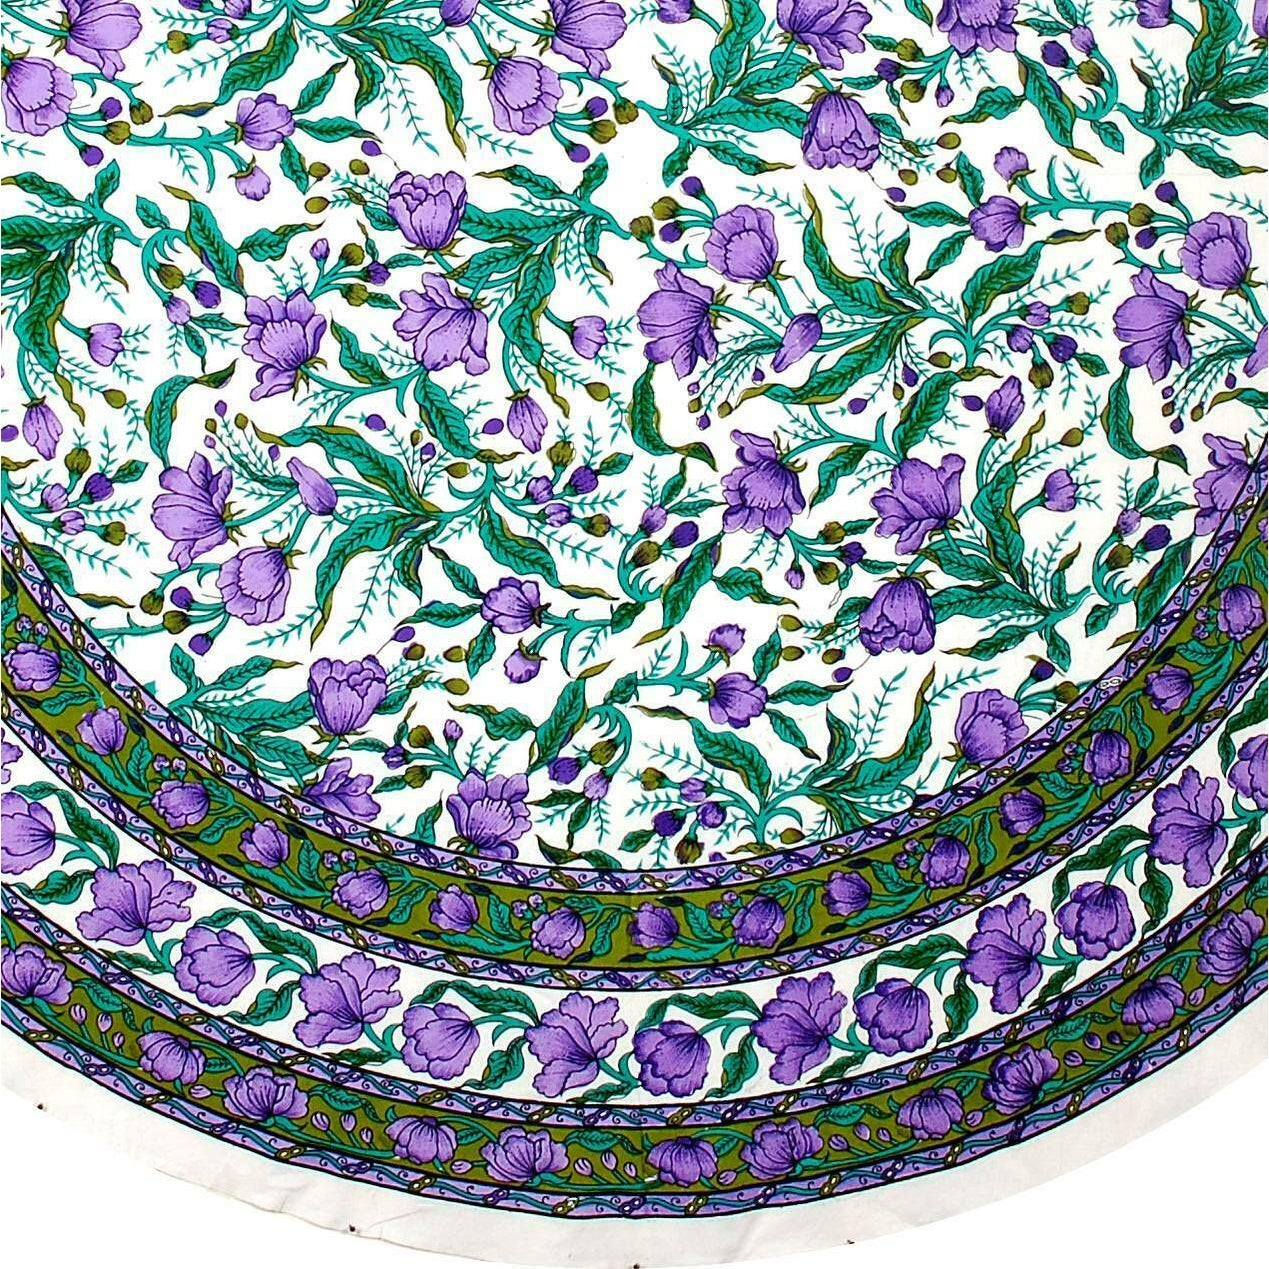 Beautiful Handmade Cotton French Floral Print Tablecloth 60 inches & 72 Inch & 90 Inch Round